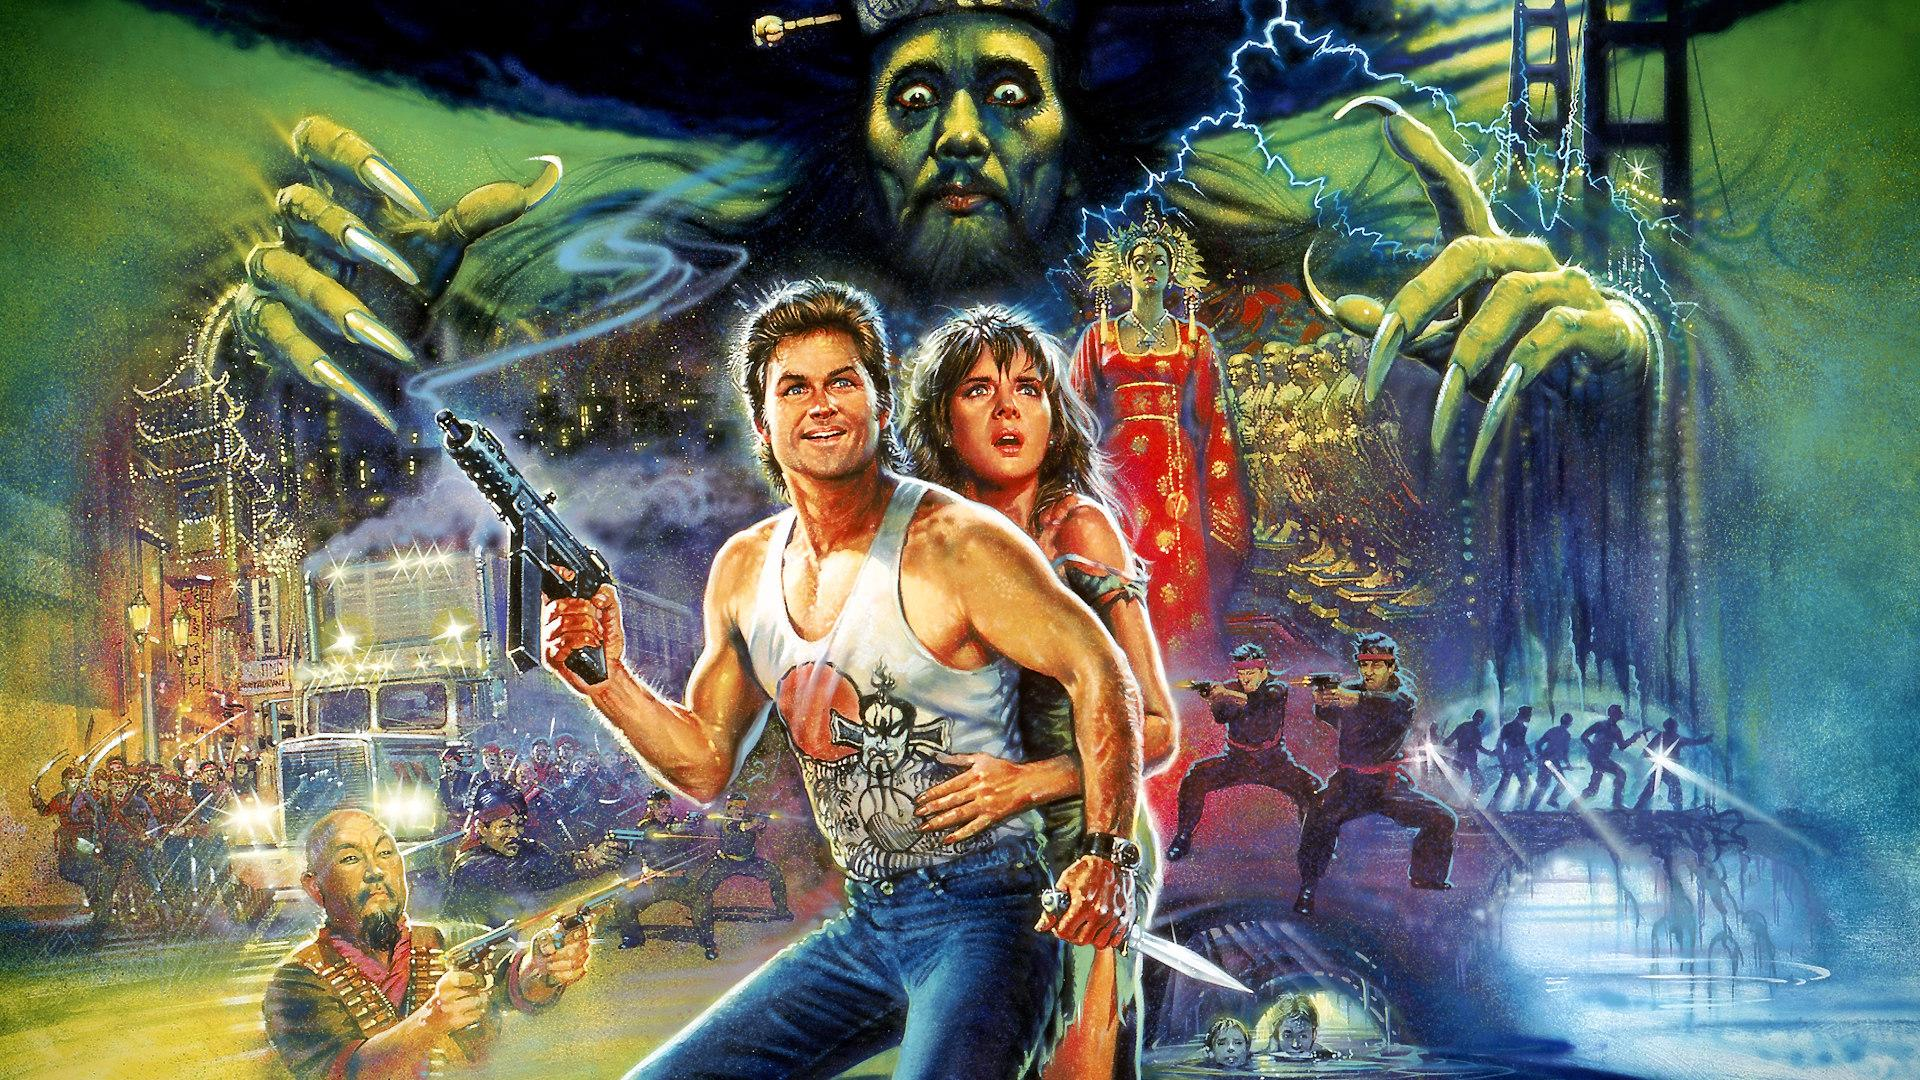 John Carpenter on Big Trouble in Little China remake: 'no one's talked to me about it'